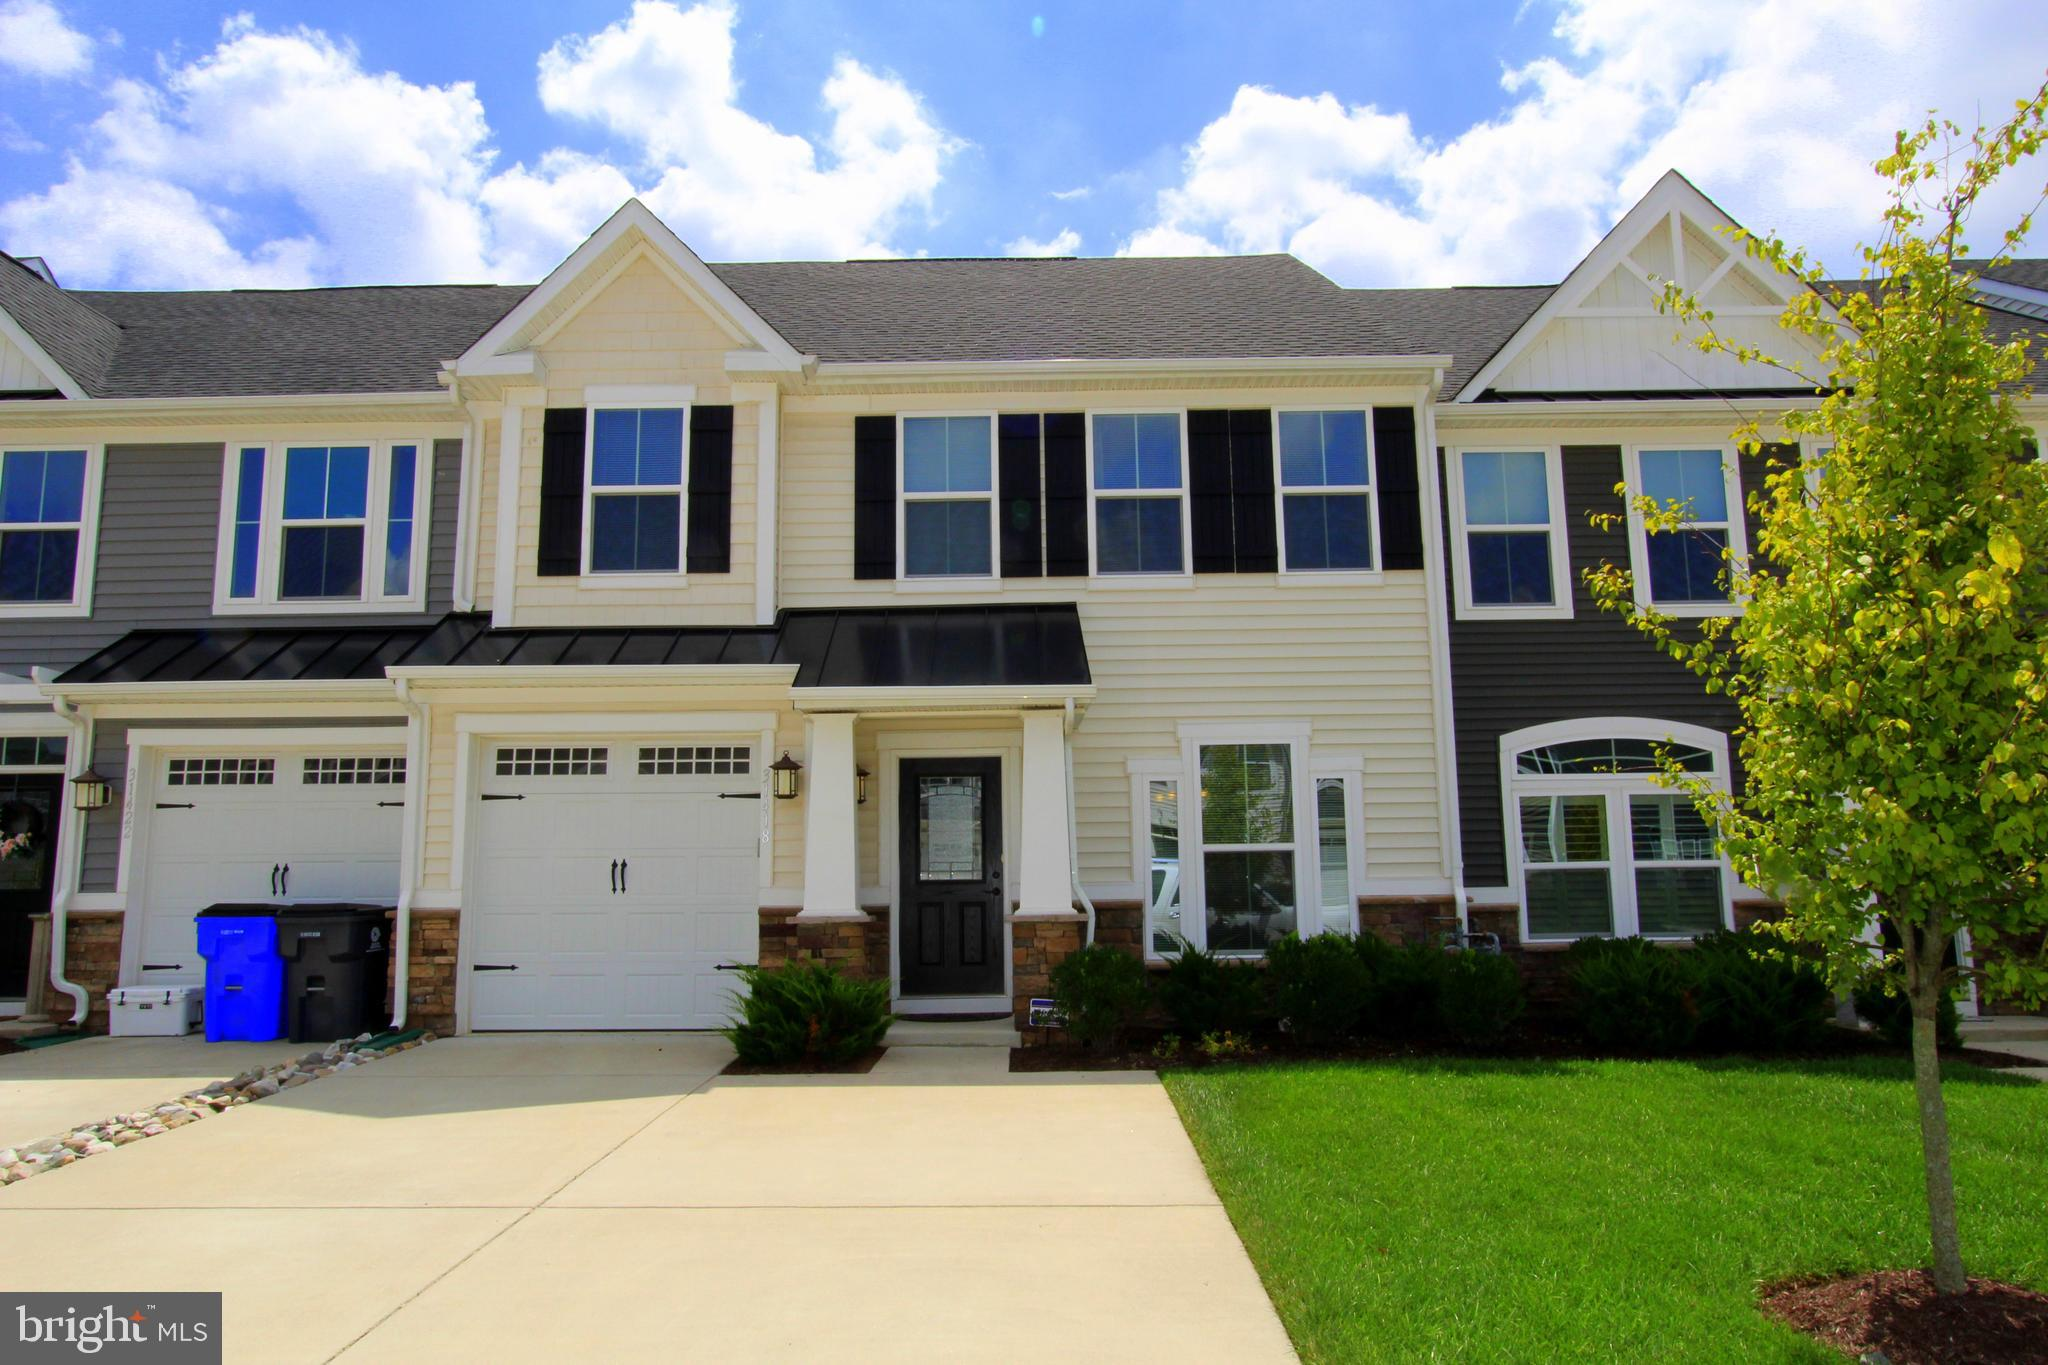 This beautiful 3 bedroom, 2 one half bathroom town home with an open floor plan has all the upgrades